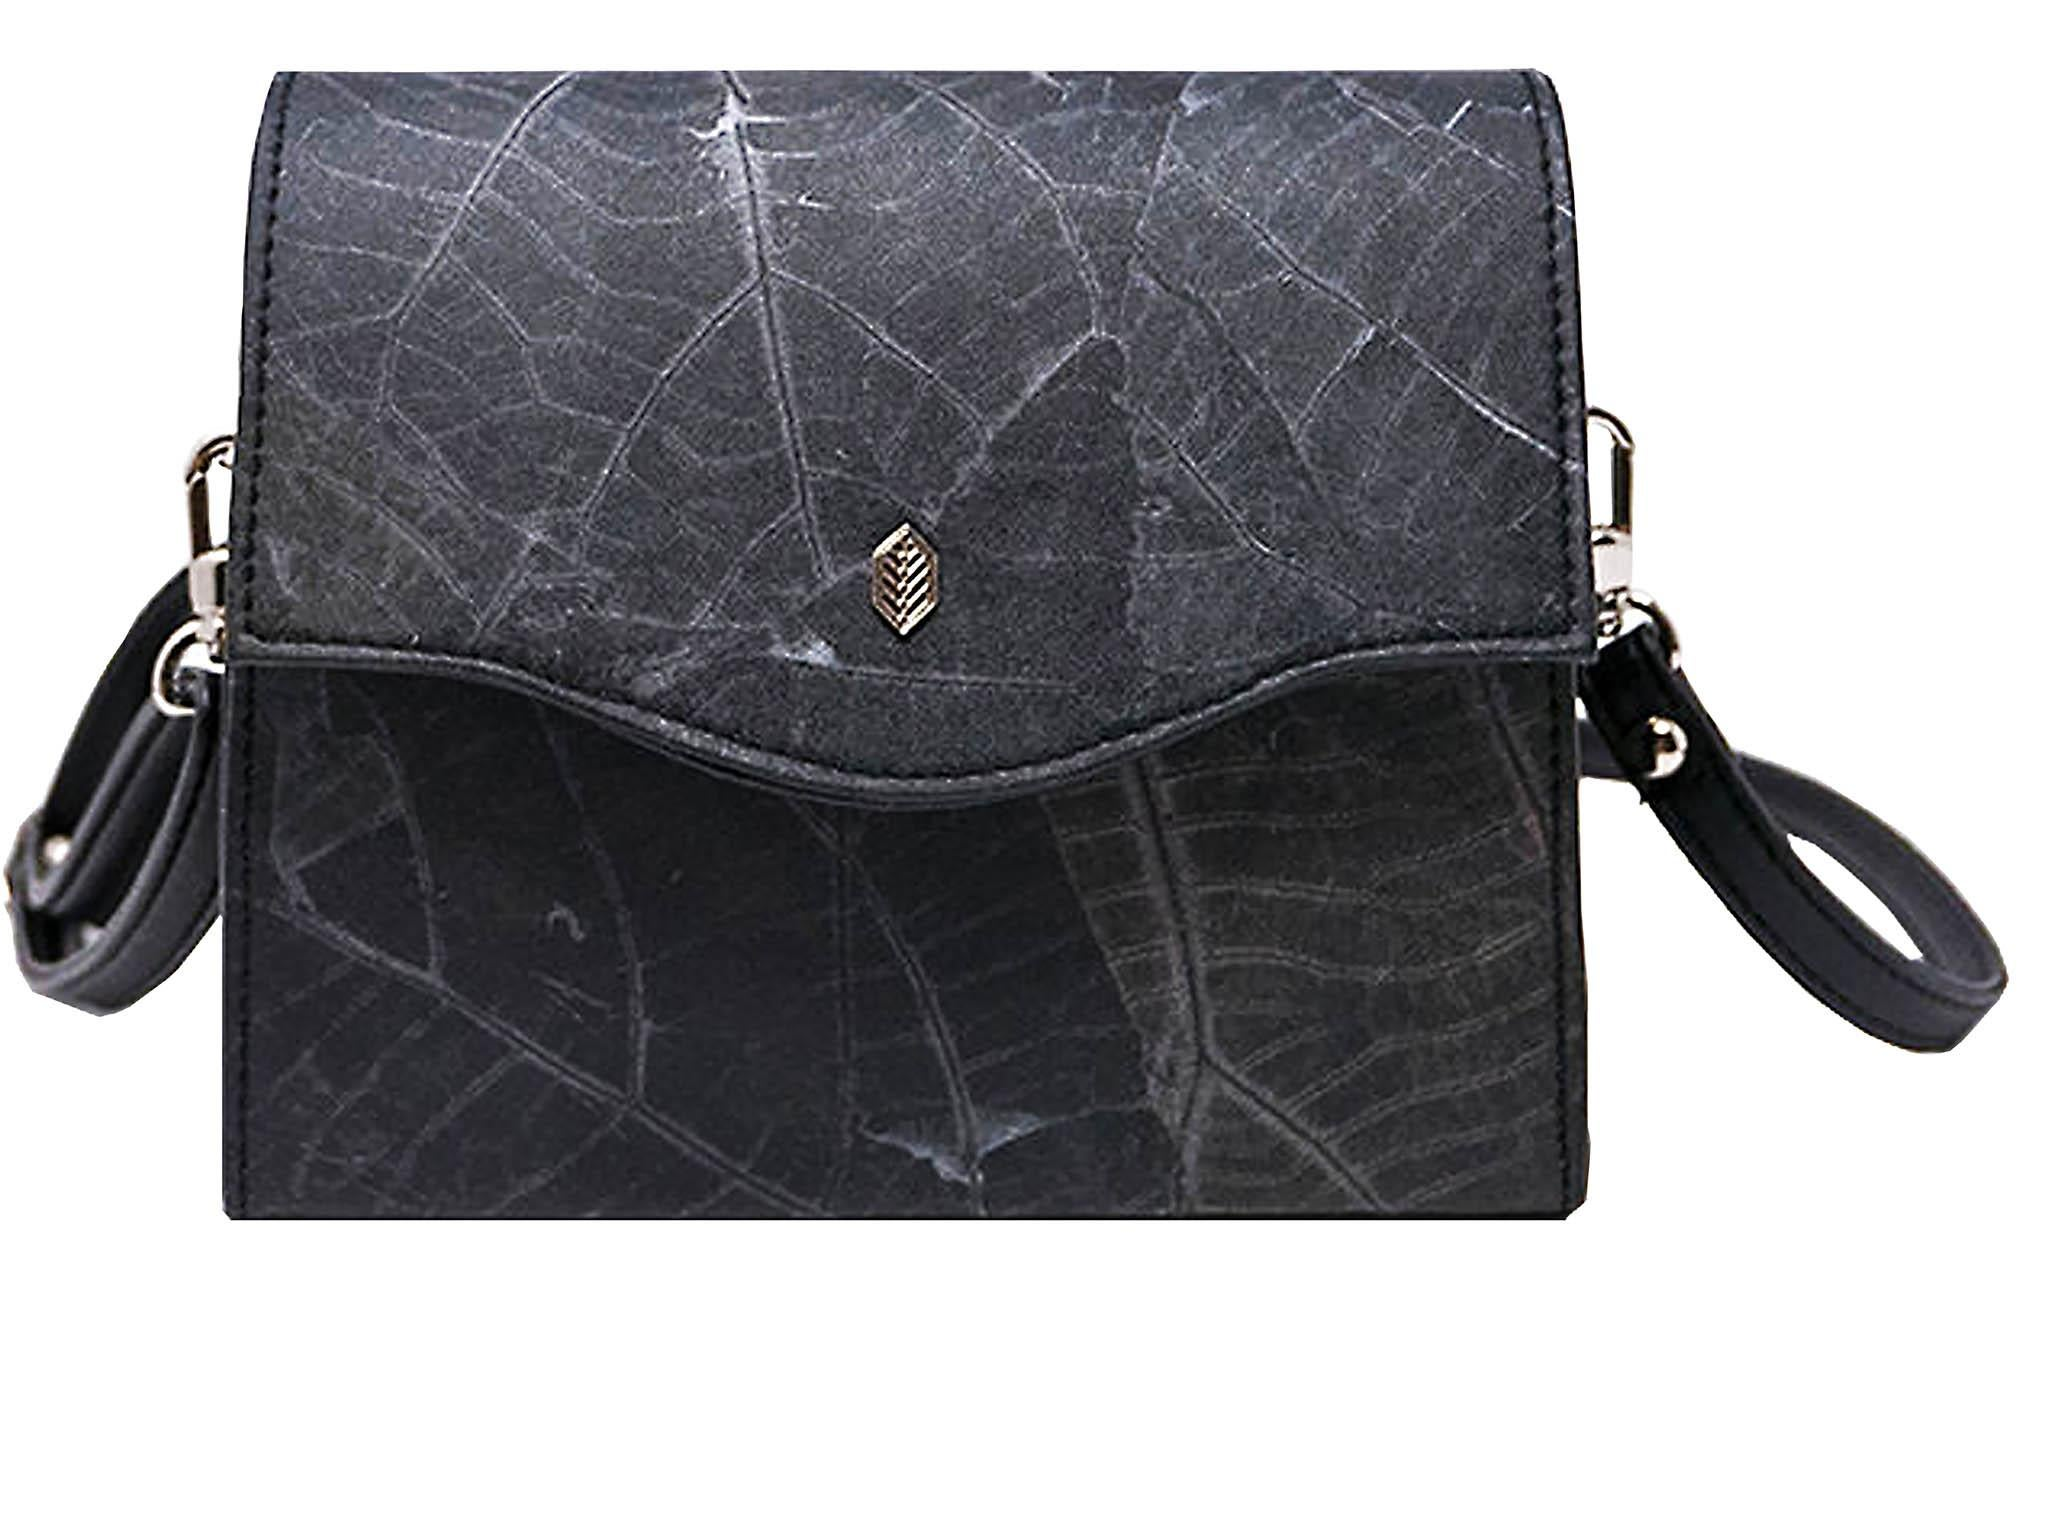 Thamon Box Bag in Black Leaf Leather, £43.68, Thamon 2b266be228